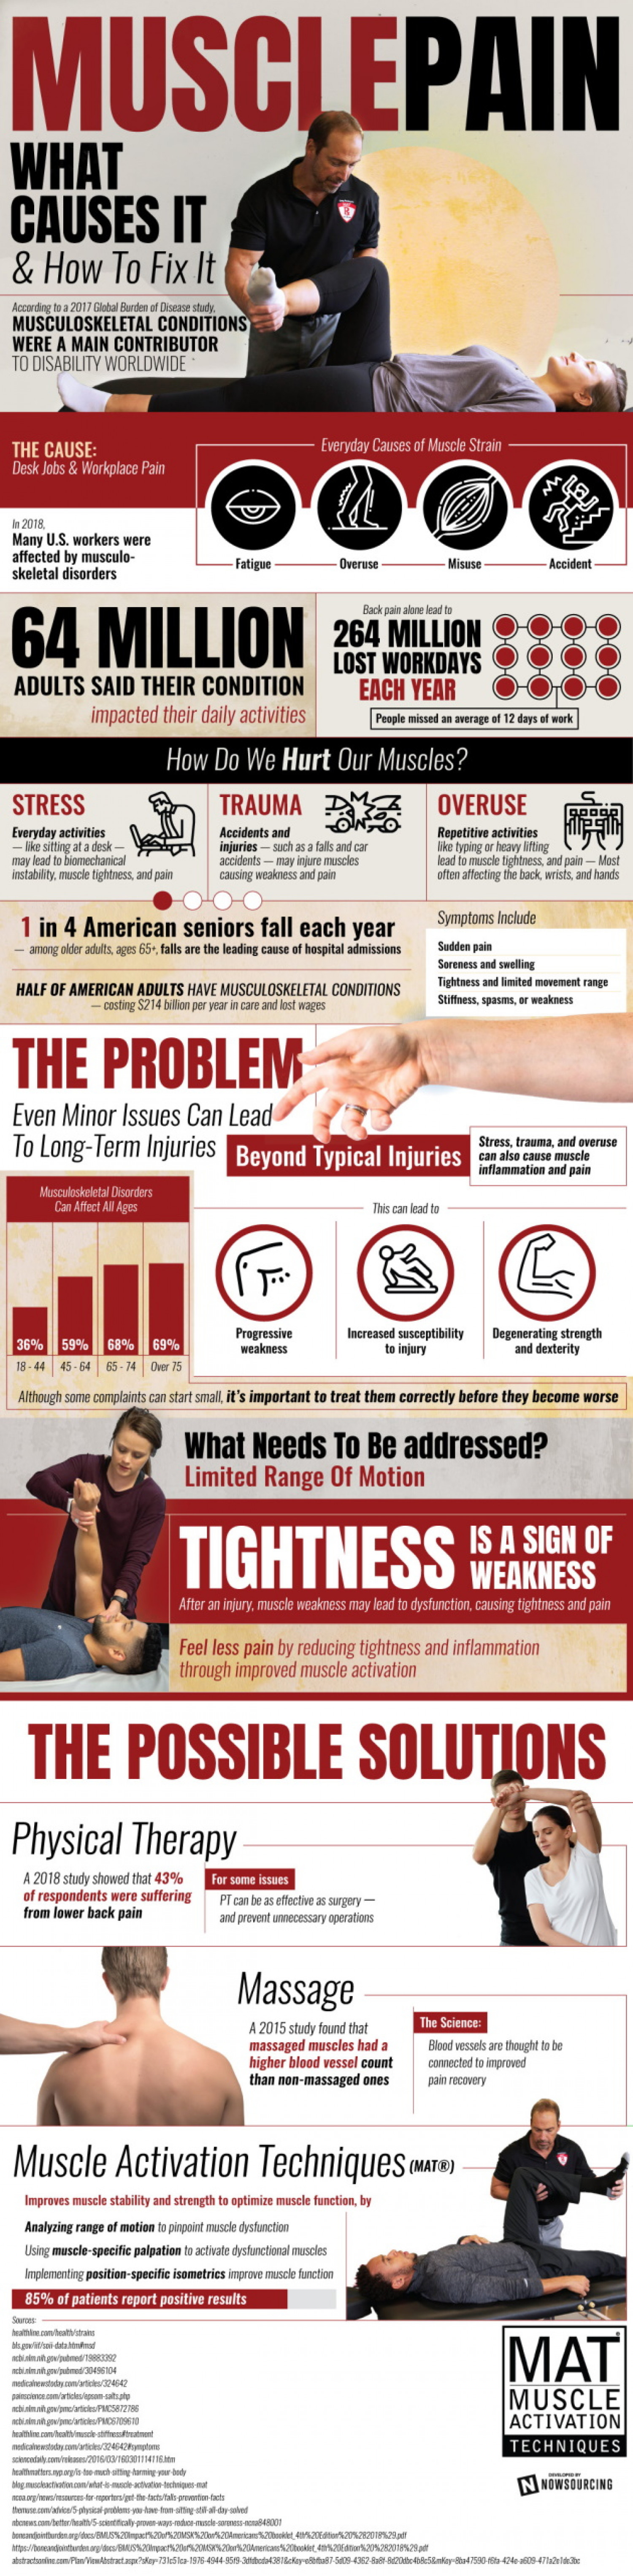 Is Muscle Pain a Sign of Weakness? Infographic